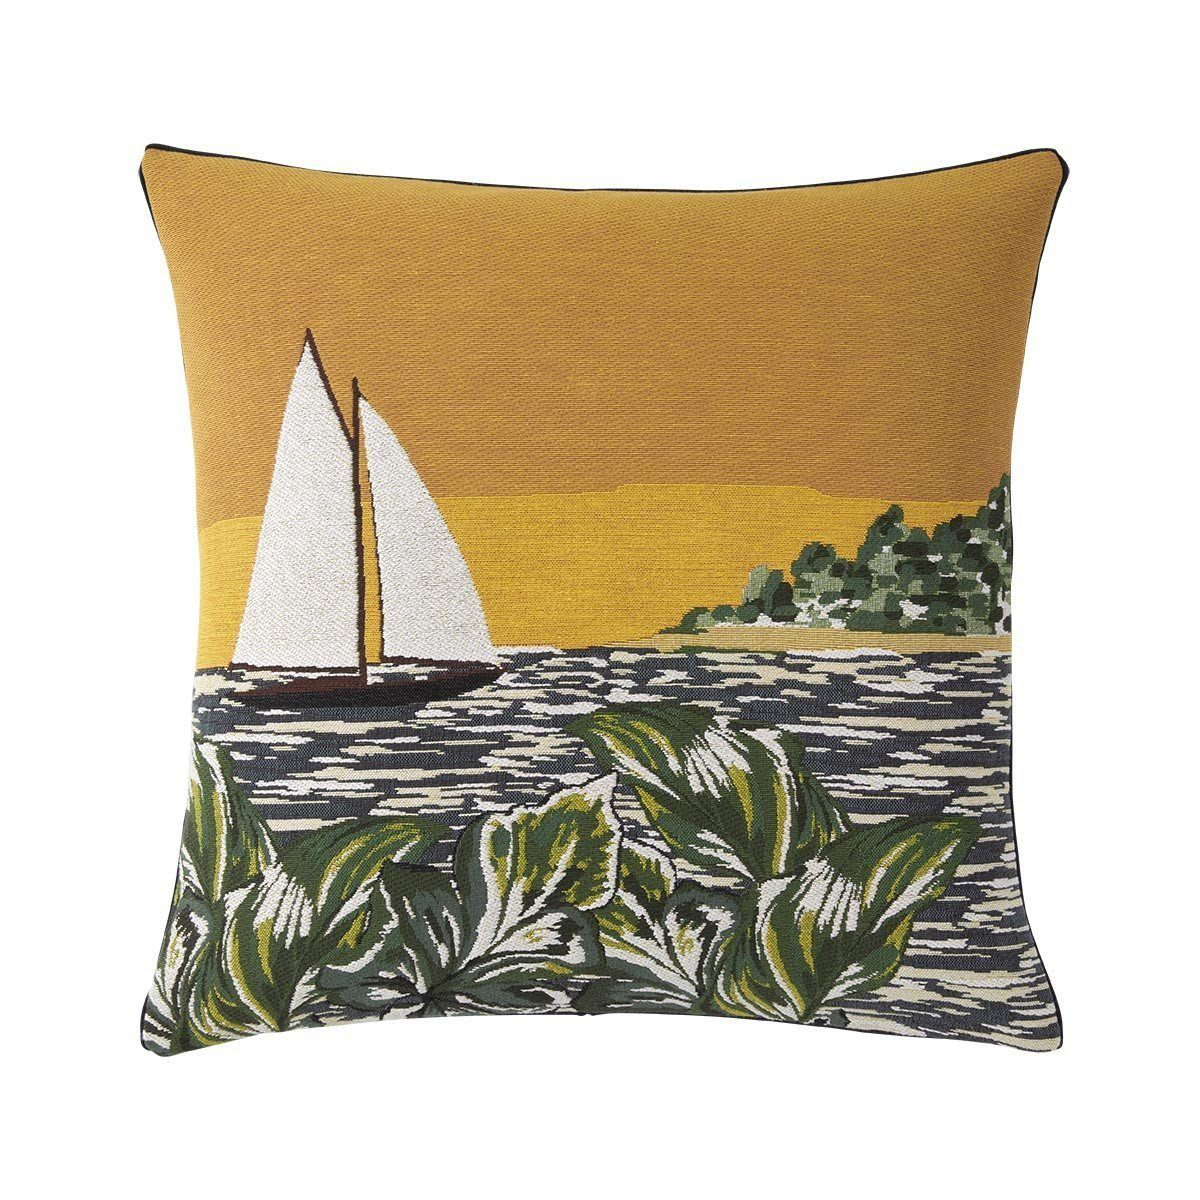 Libertad Soleil Decorative Pillow by Iosis